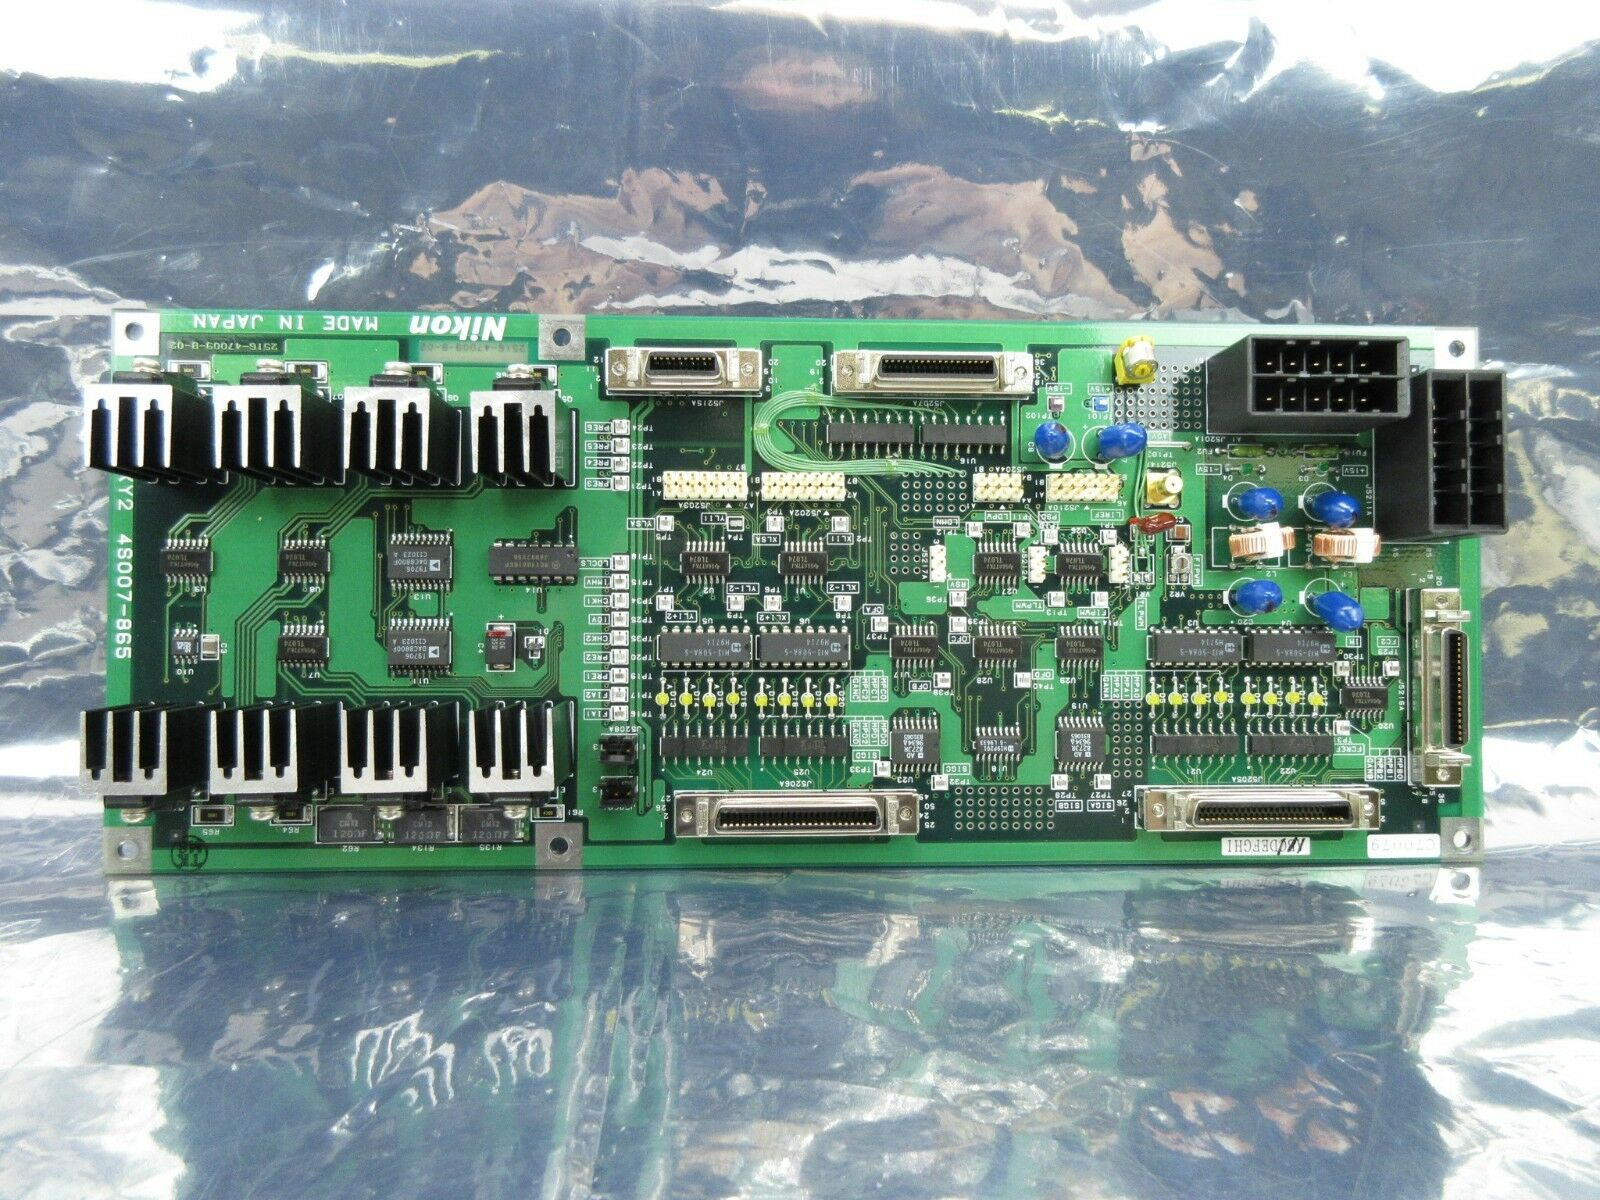 Nikon 4S007-865 Interface Control Board PCB SR8-XY2 NSR-S202A Used Working